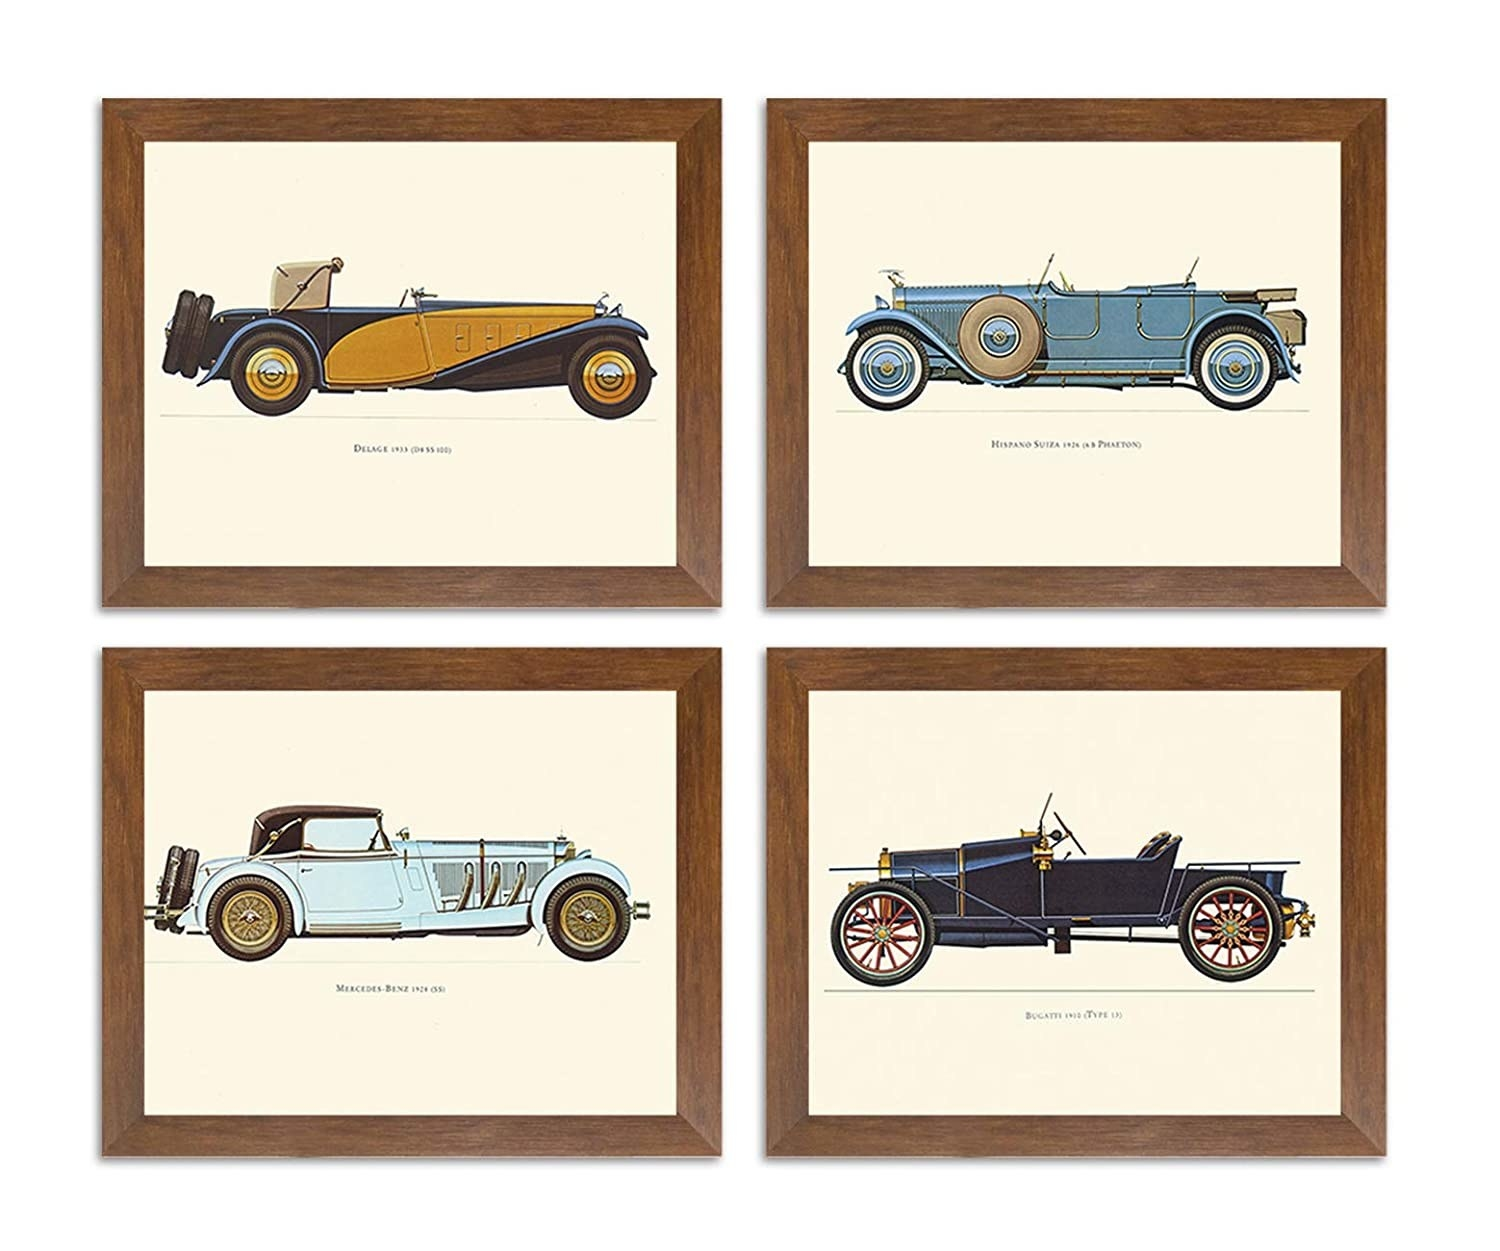 4 framed posters of vintage cars.